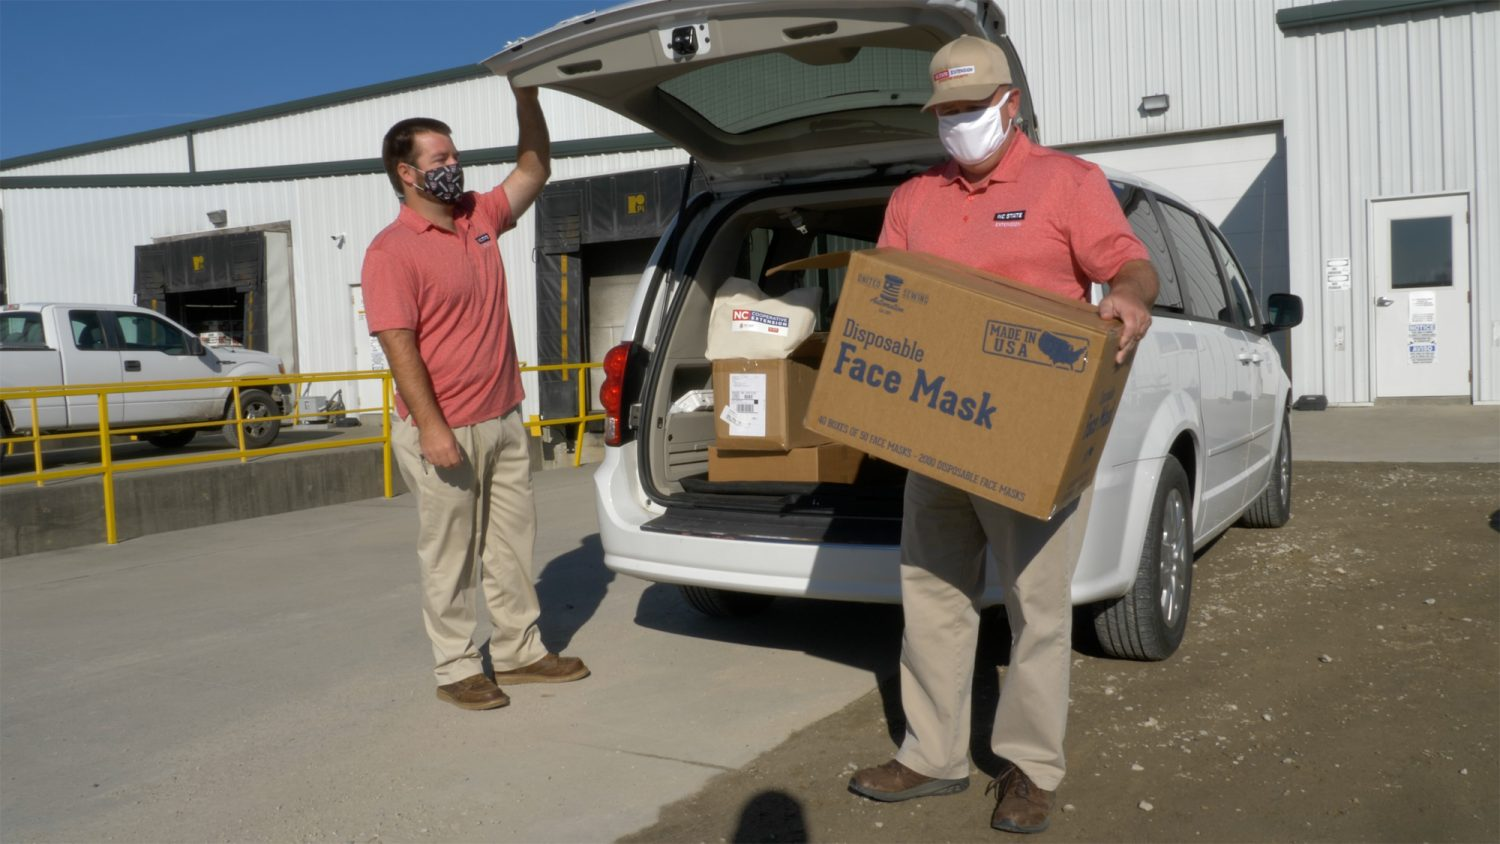 N.C. Cooperative Extension employees unload face masks from the trunk of a van during the COVID-19 pandemic.